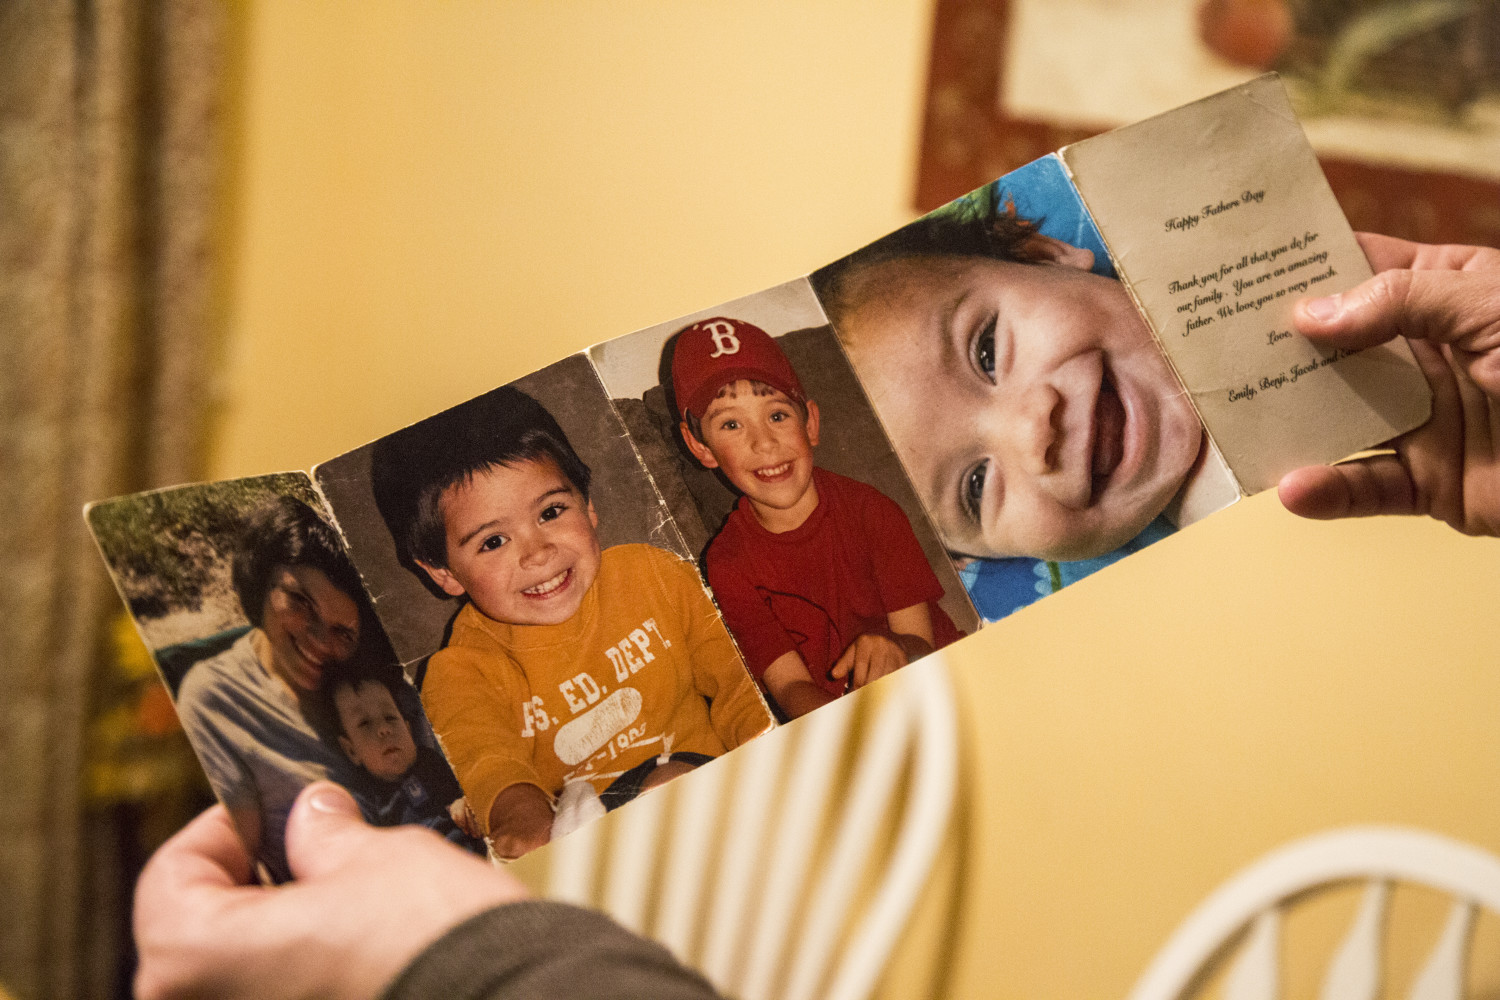 Mark Tidd holds up one of his favorite Father's Day gifts, a folded display of photos of his children, including his daughter Lucy Tidd, in the red baseball cap, in Portland.